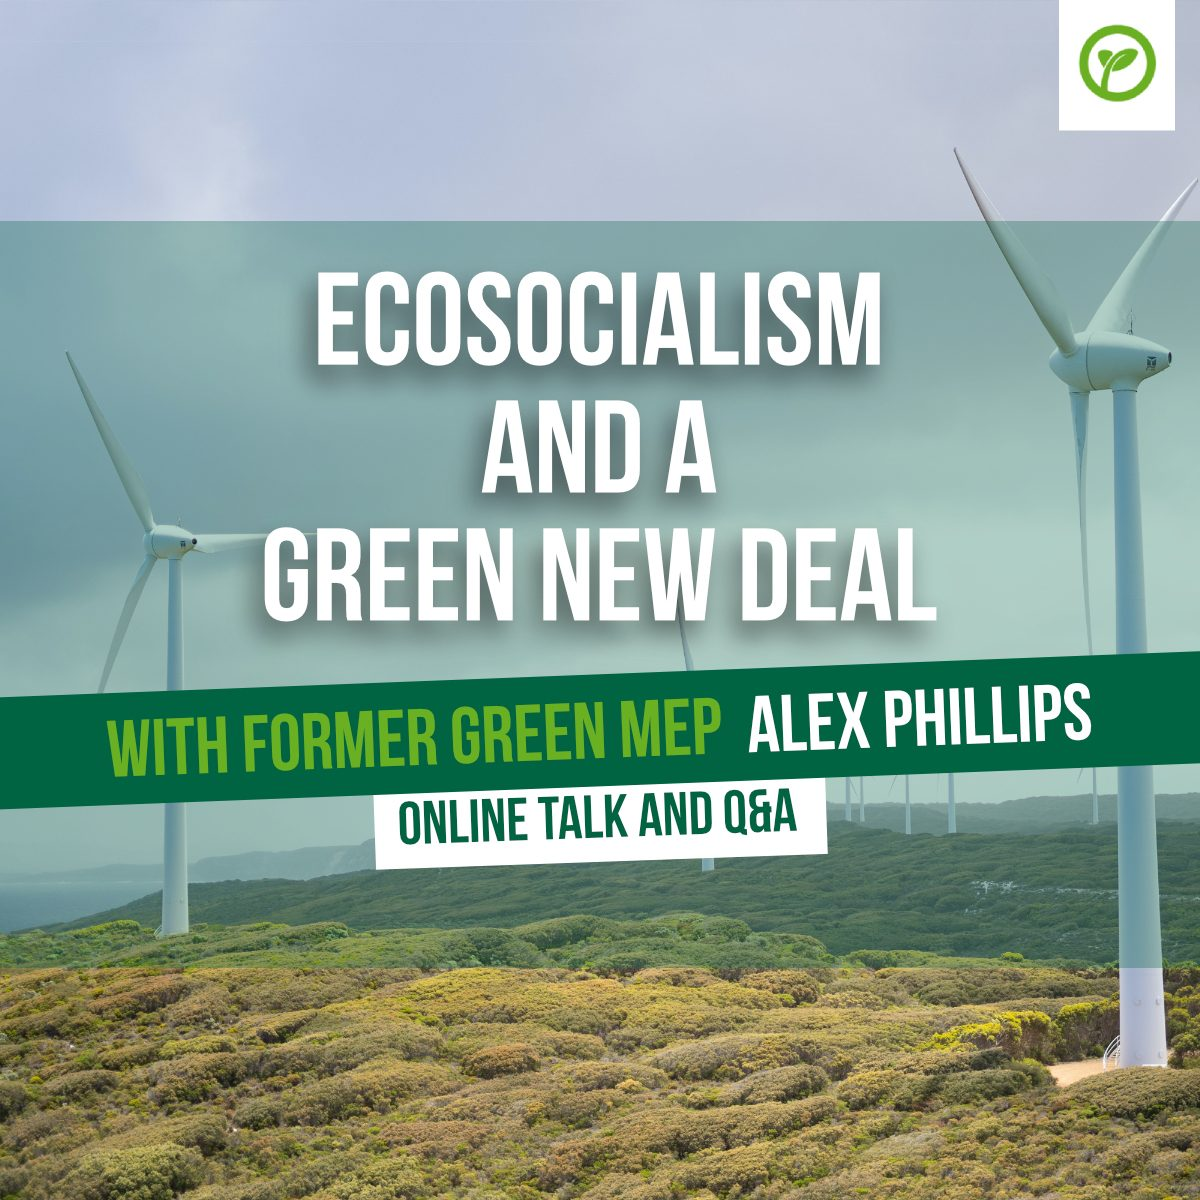 Ecosocialism and a Green New Deal, with former Green MEP Alex Phillips. Online Talk and Q&A.